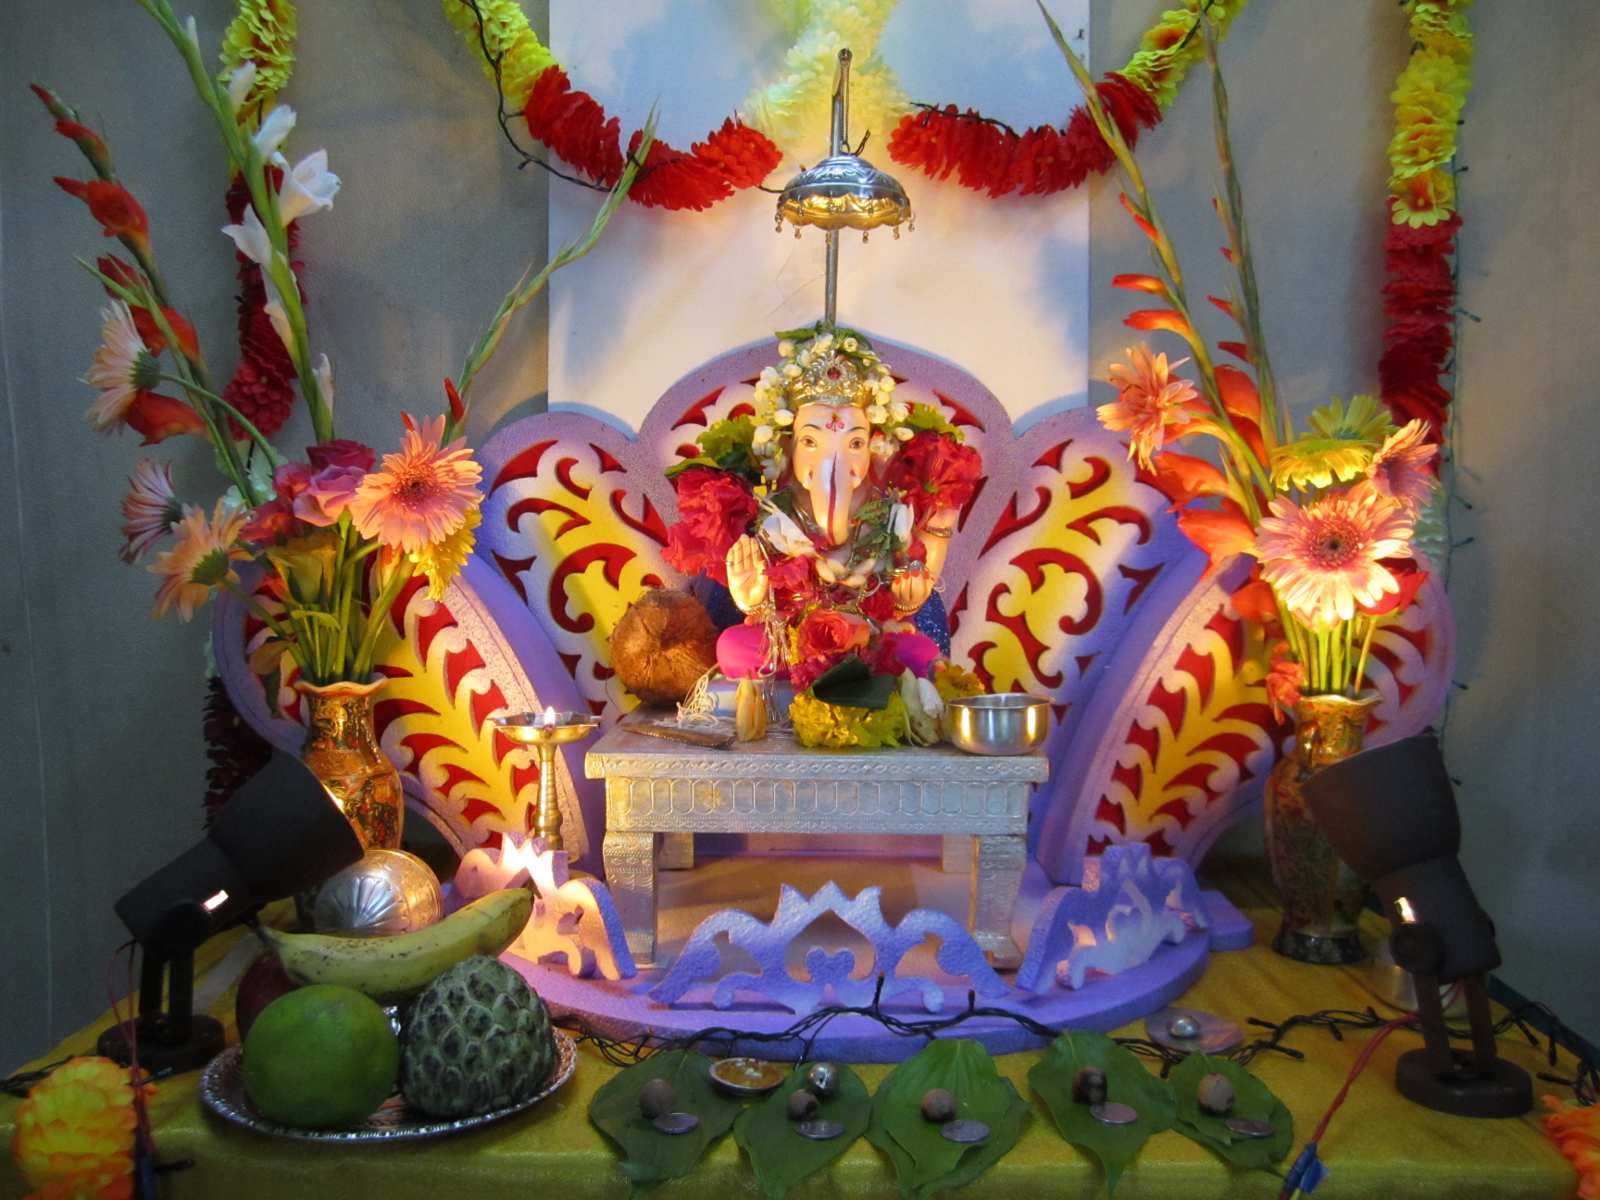 Amazing Ganesha decoration ideas for Ganesh Chaturthi Festival ... for Flower Decoration Ideas For Ganpati  153tgx